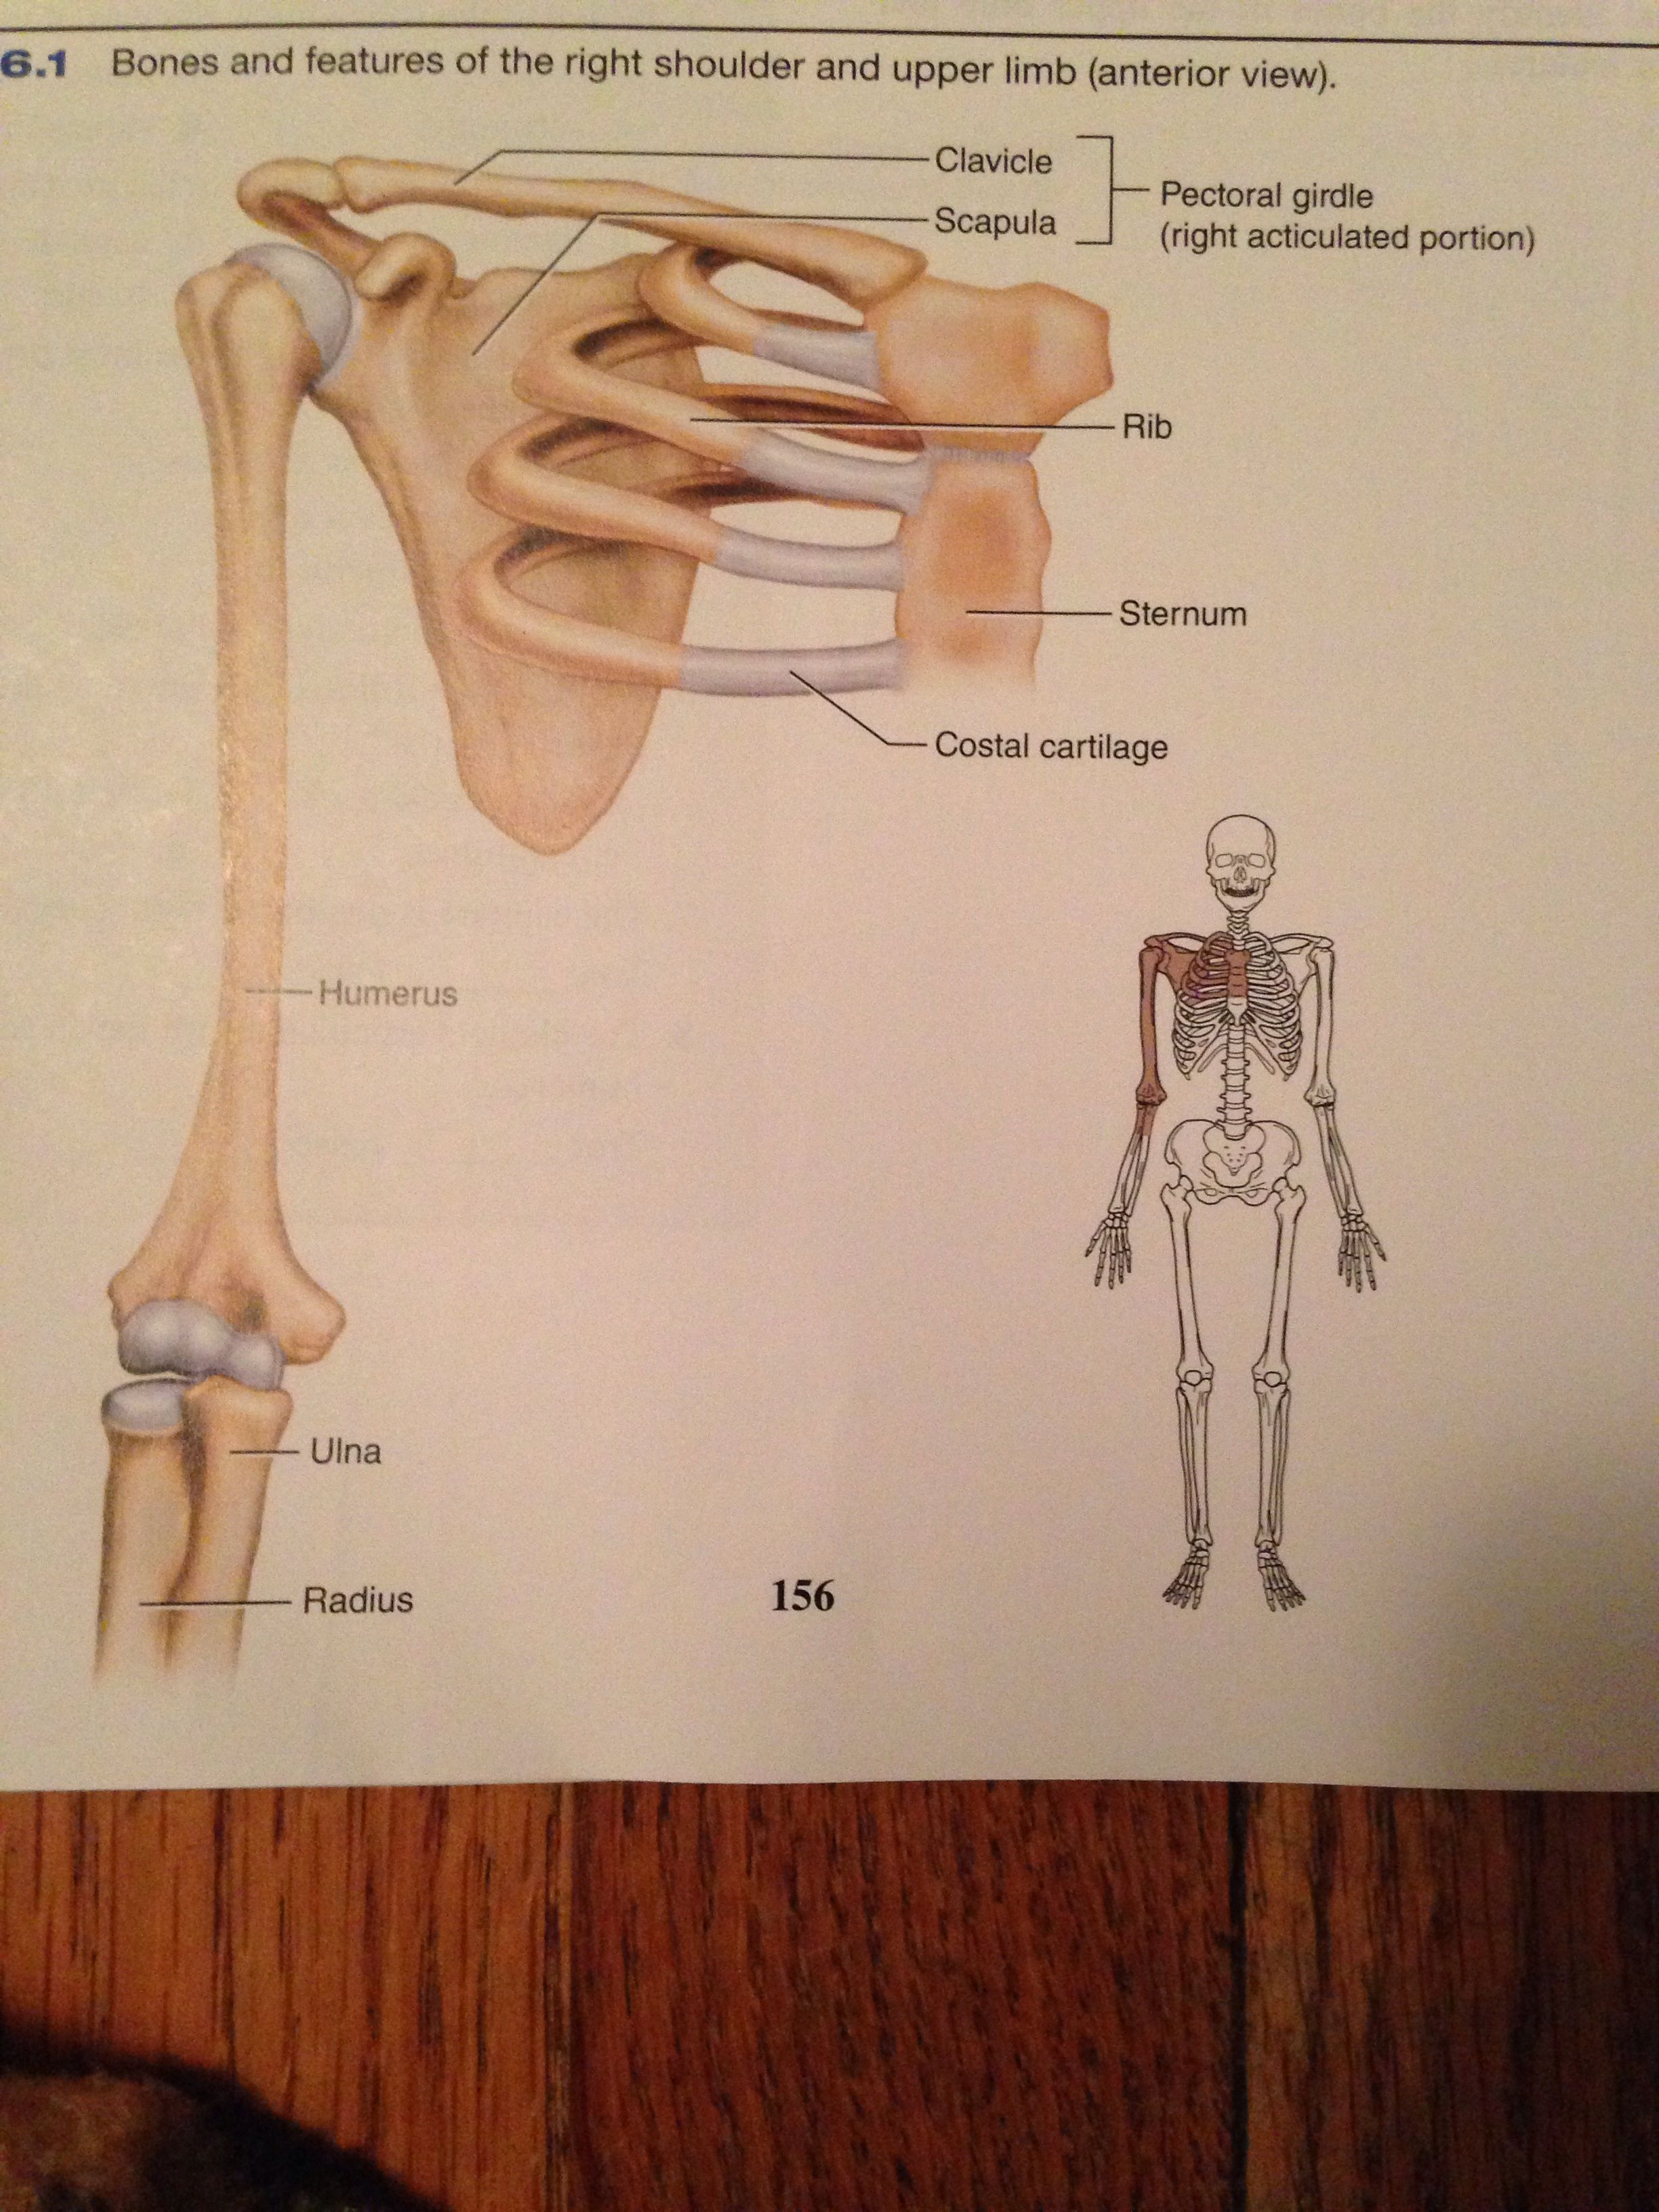 R shoulder and upper limb   Anatomy & physiology Some Bio Medical ...